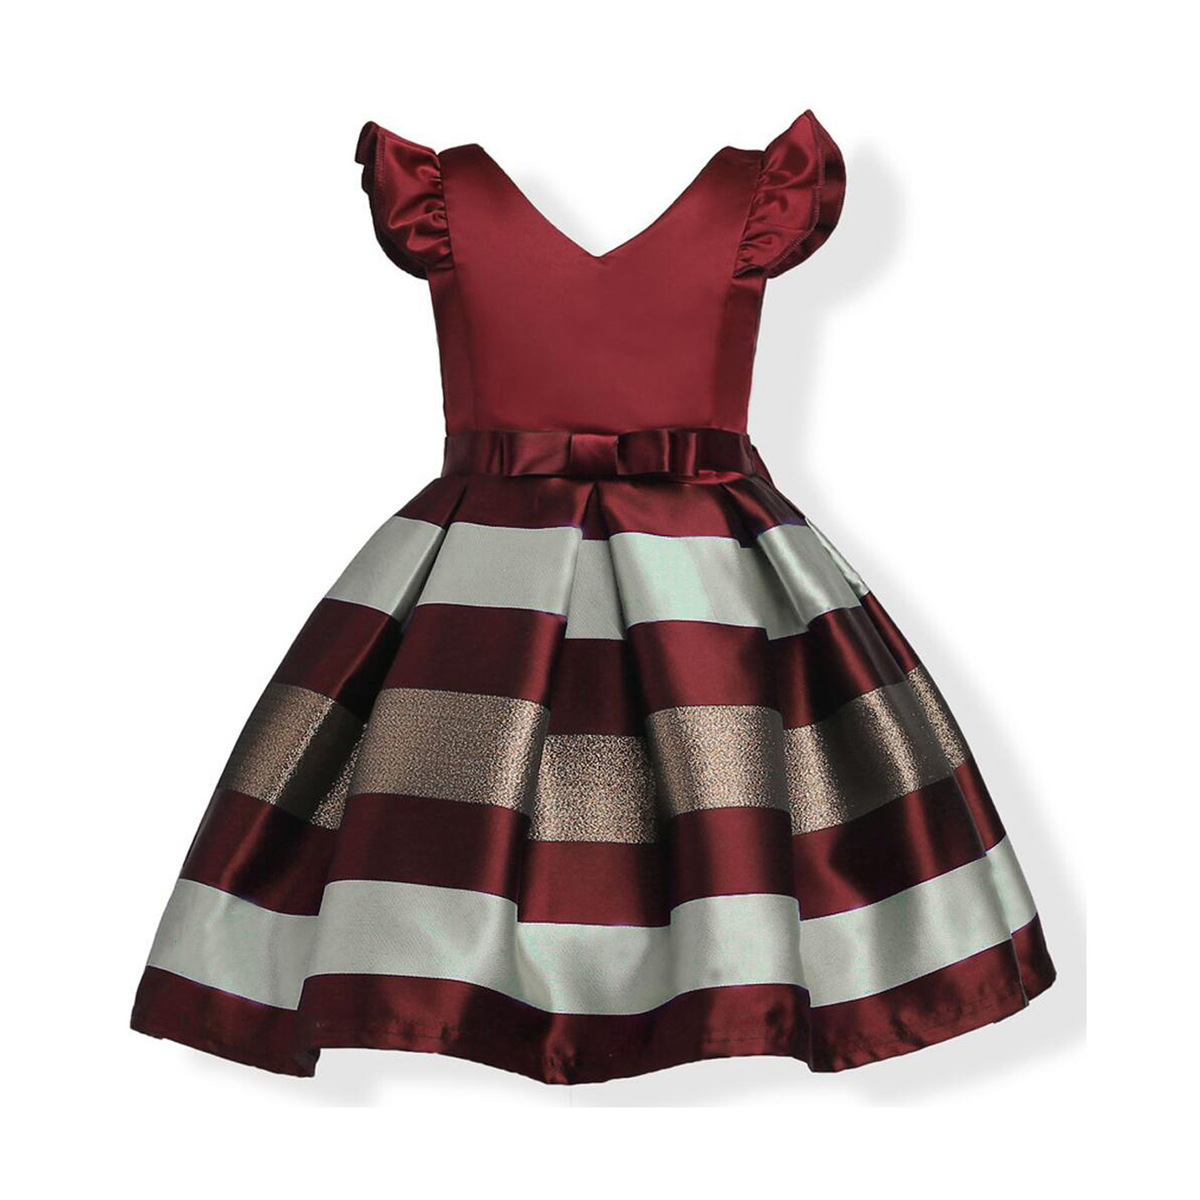 Elegant Kids Dresses for Girls V Neck Sleeveless Striped Bow Girl Dress Summer Wedding Satin Soft Layered Dresses Back Zipper все цены